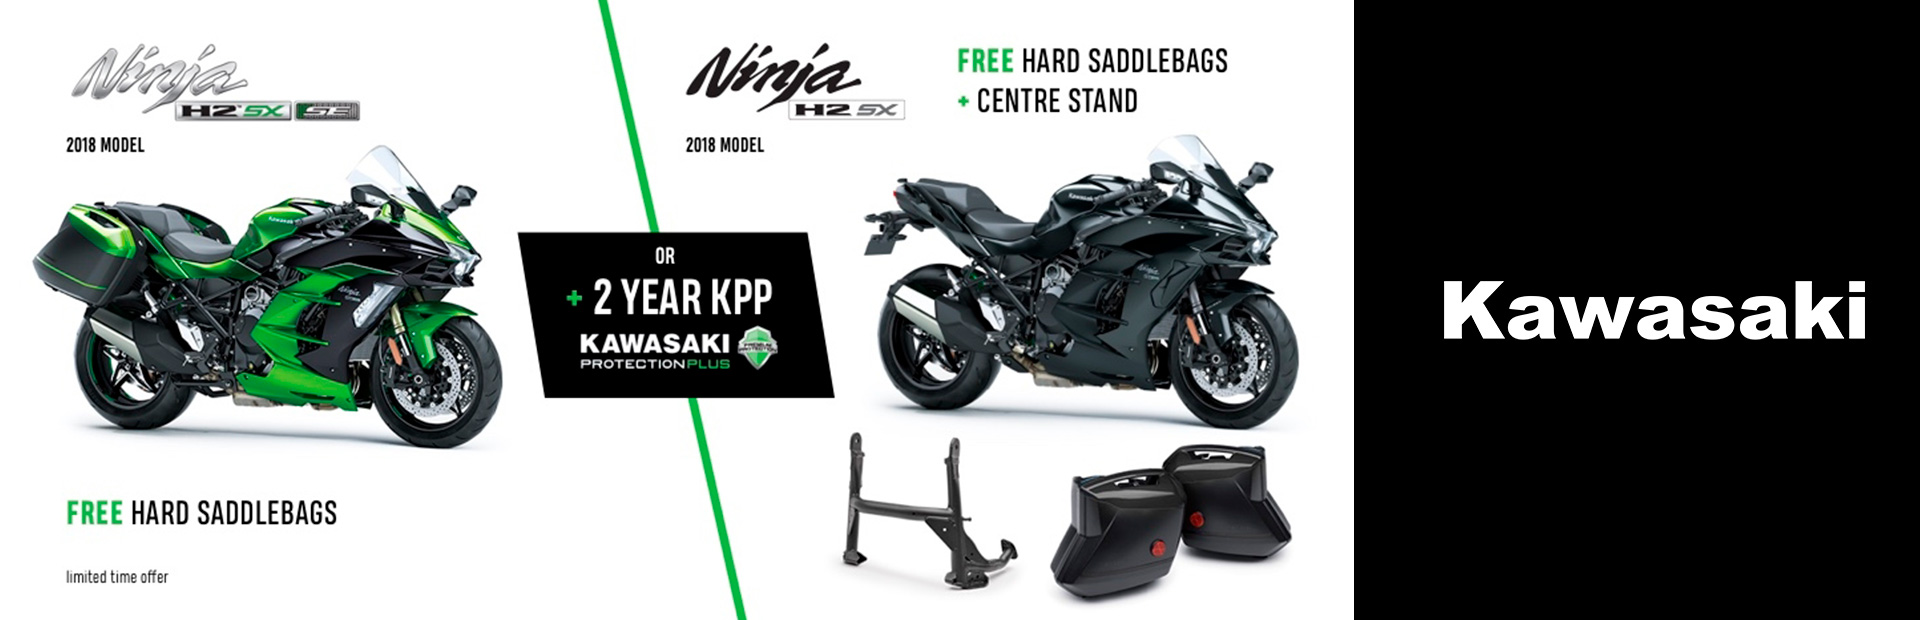 Kawasaki Ninja H2 Sx Free Accesories Northstar Recreation Sudbury